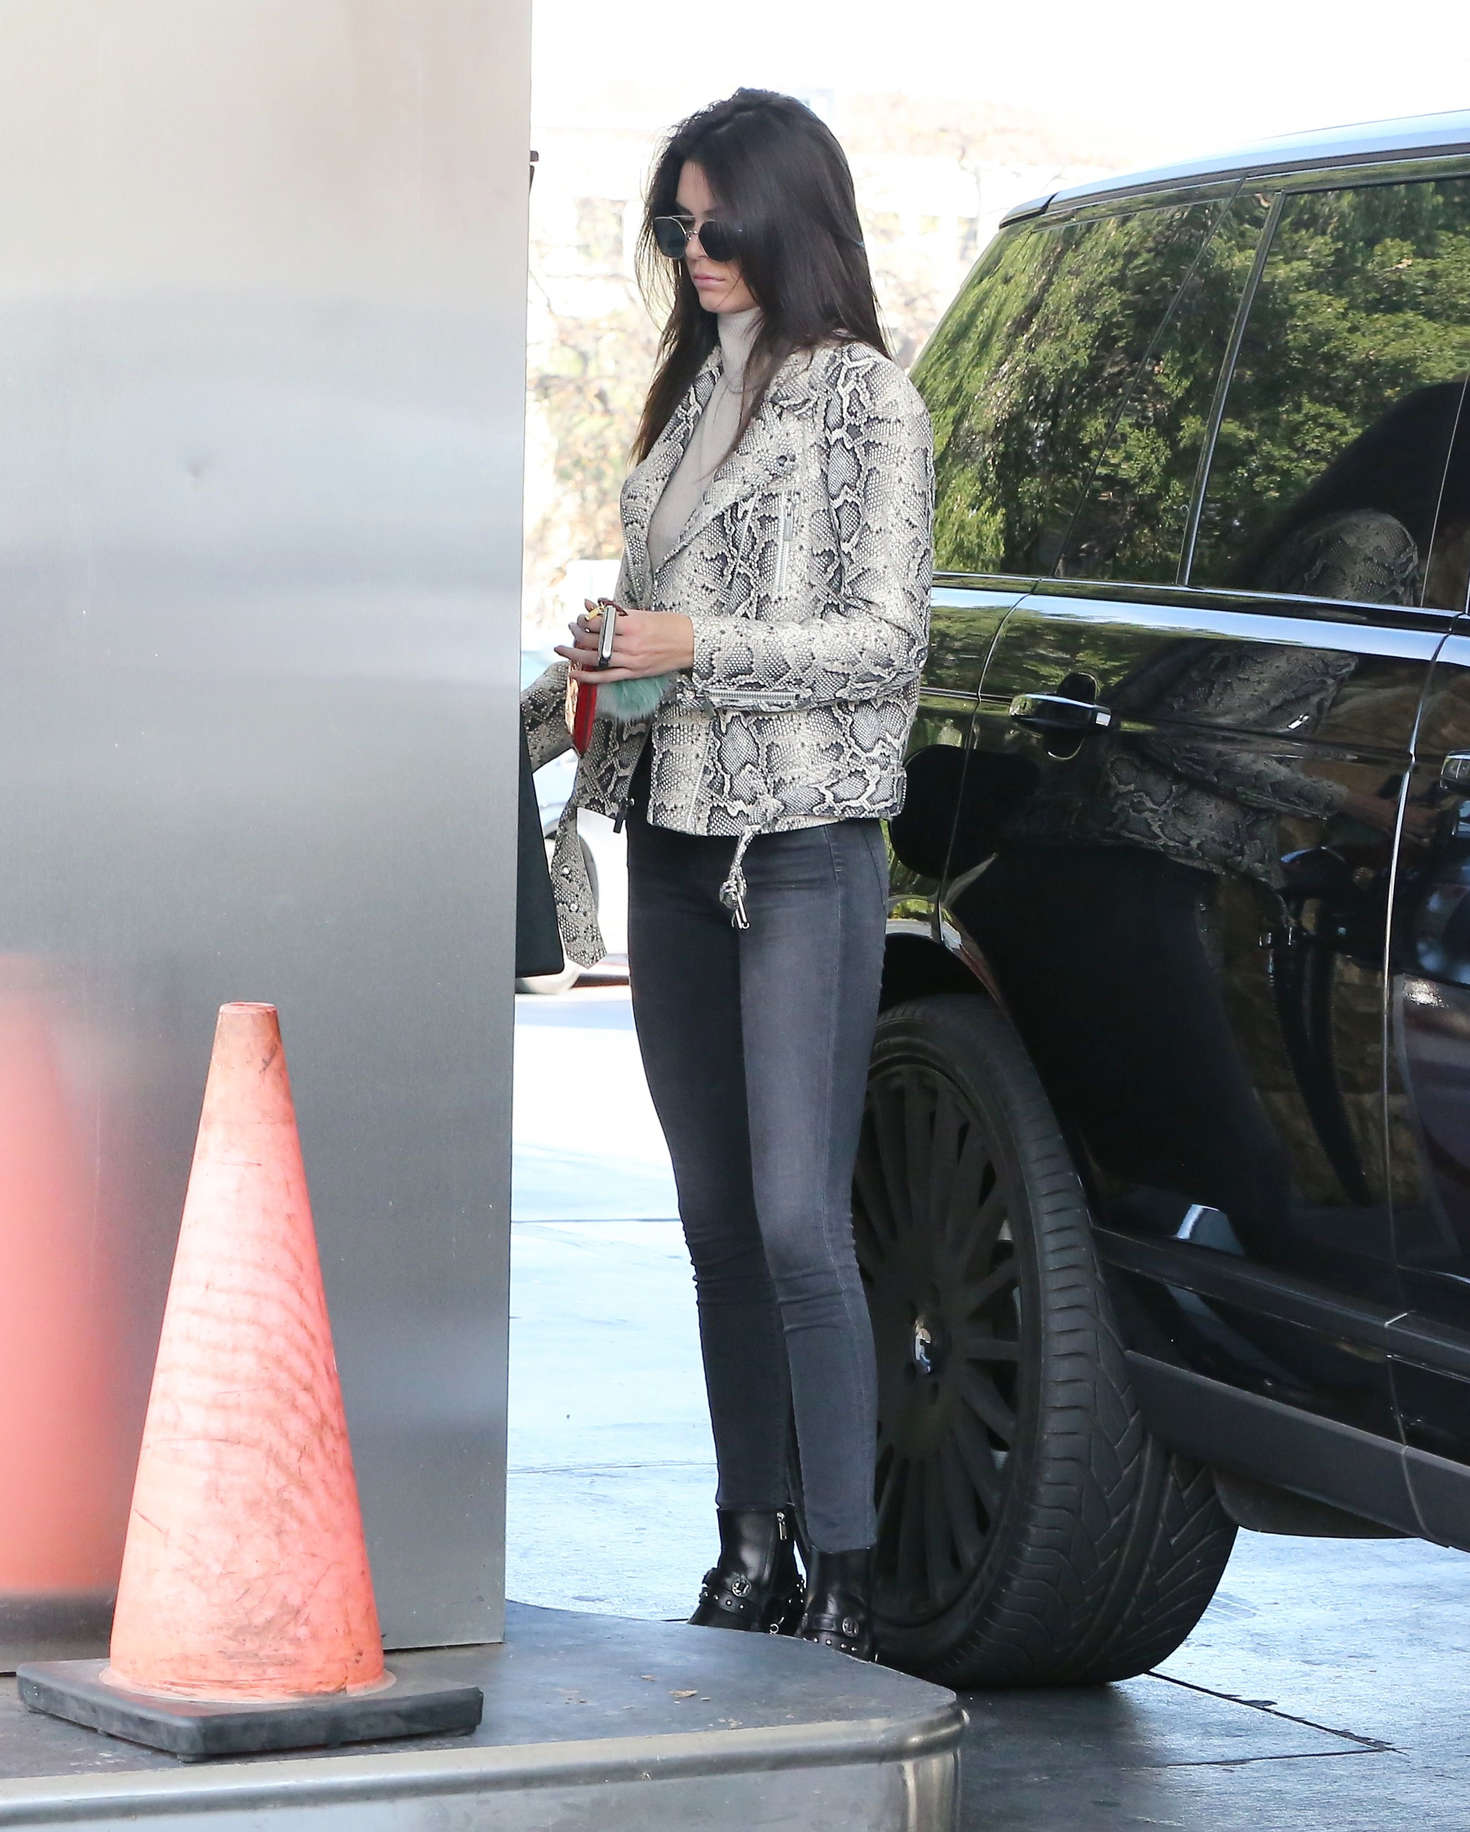 Kendall Jenner rocking a close fitting grey Jacket with a snakeskin fabric, full sleeves and a turtleneck